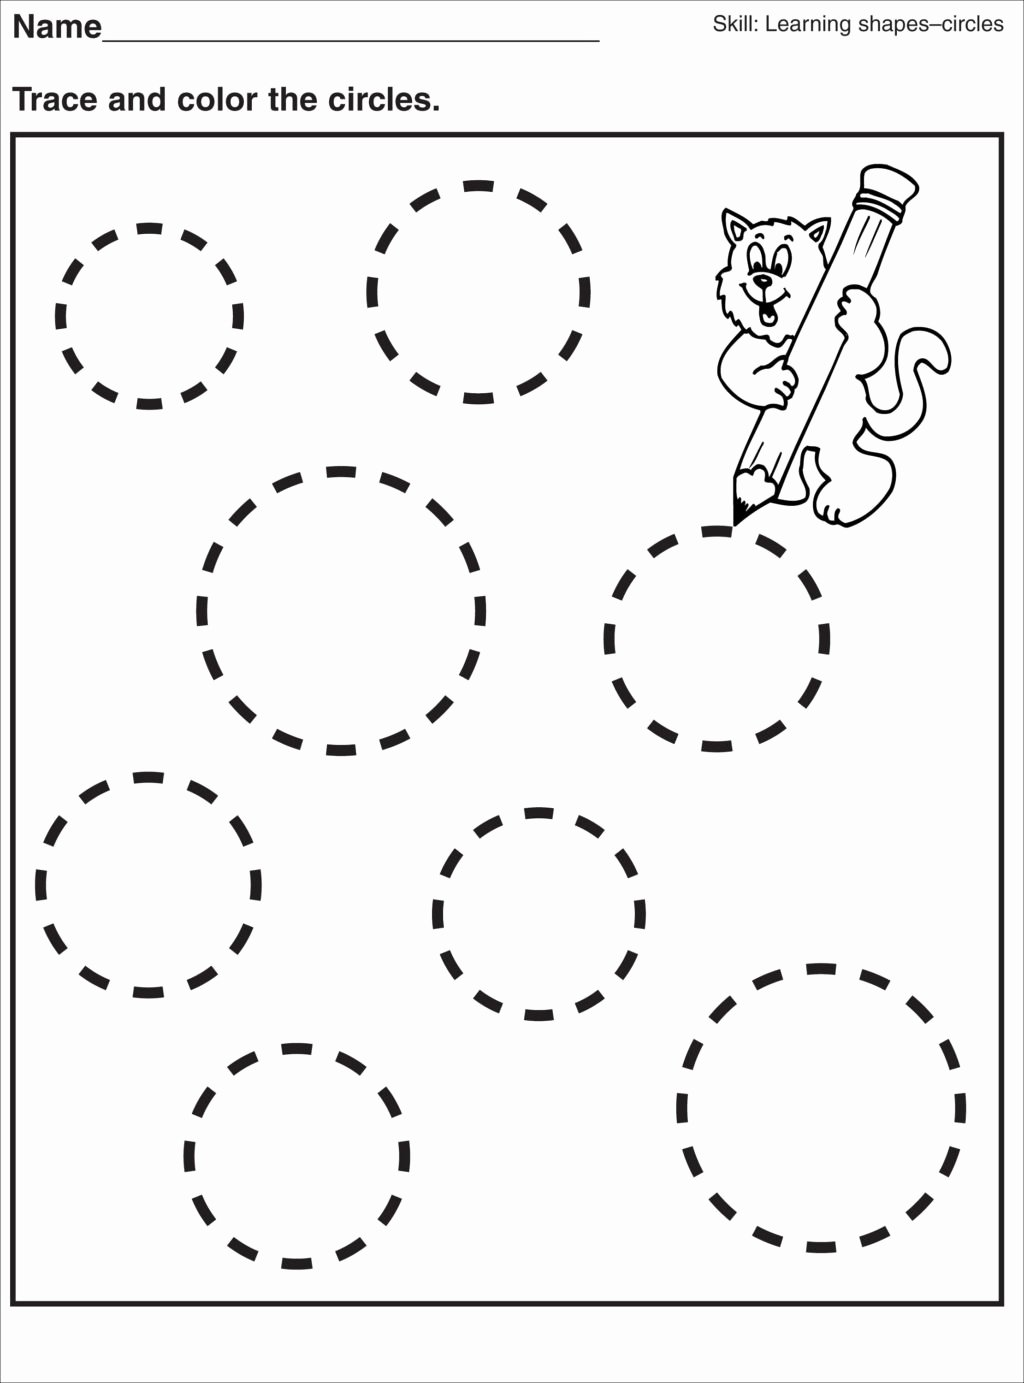 Winter Activities Worksheets For Preschoolers